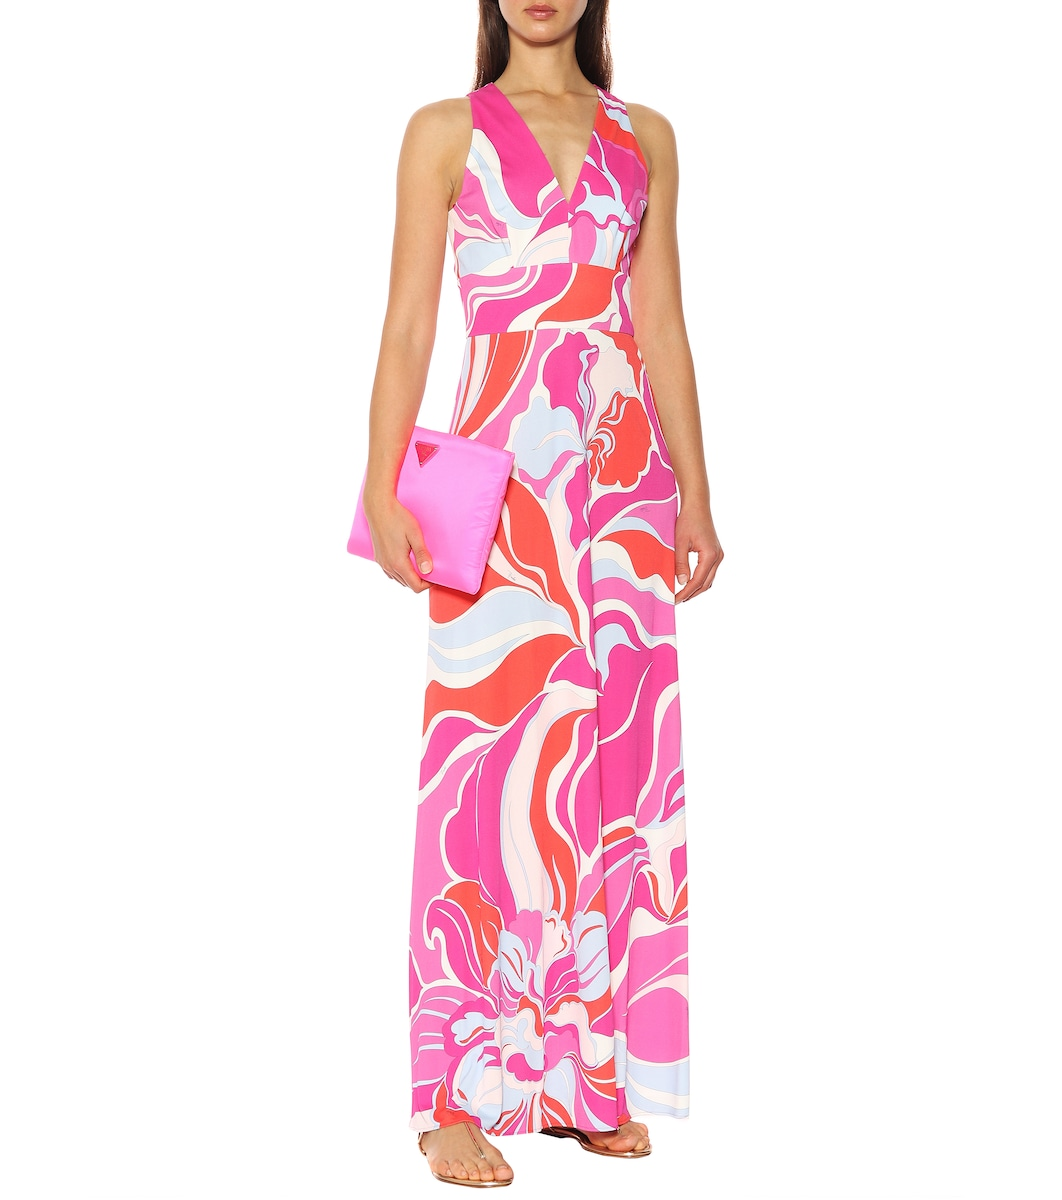 a11a2d885e9a Emilio Pucci - Printed silk-blend maxi dress | Mytheresa